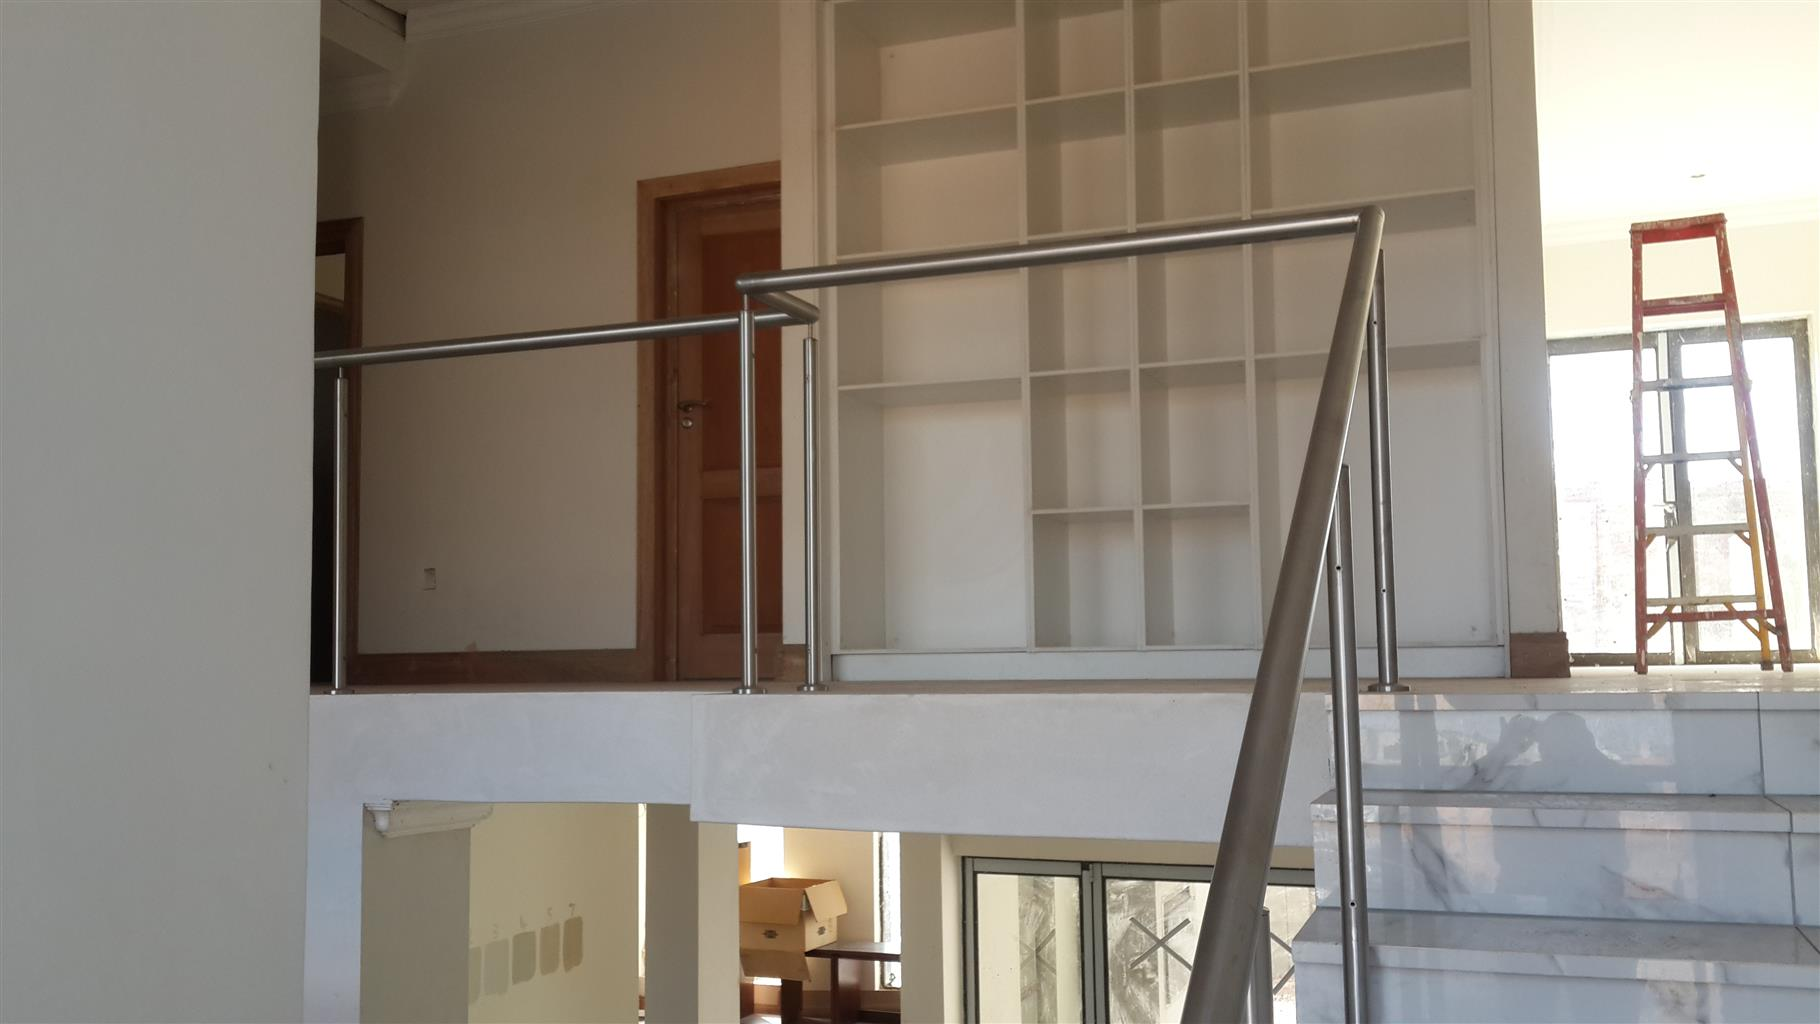 Balustrades - Manufacture, Supply & Install